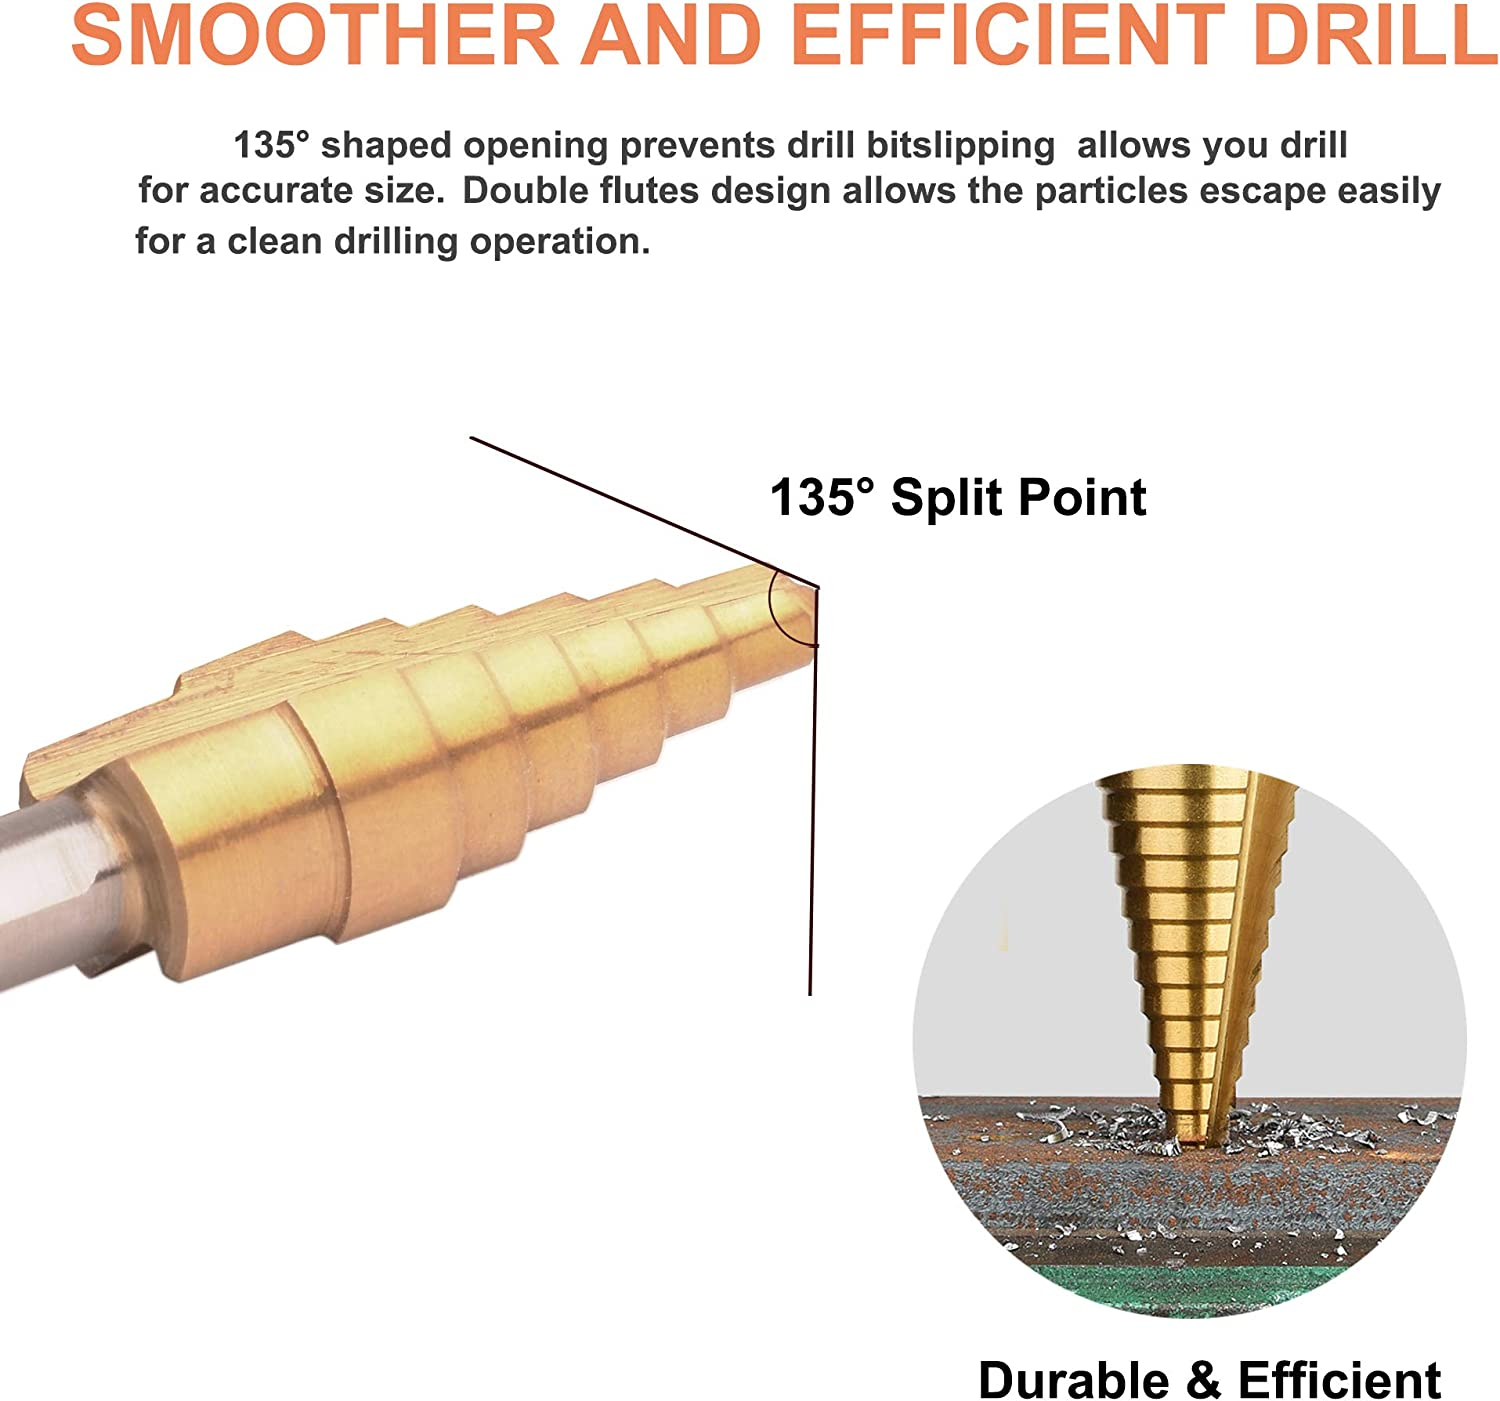 M6 x 1.00 Size DIN Length Plug Style Morse Cutting Tools 61522 Metric Thread Forming High Performance Taps High-Speed Steel Titanium Carbonitride Coated Finish D8 Pitch Diameter Limit